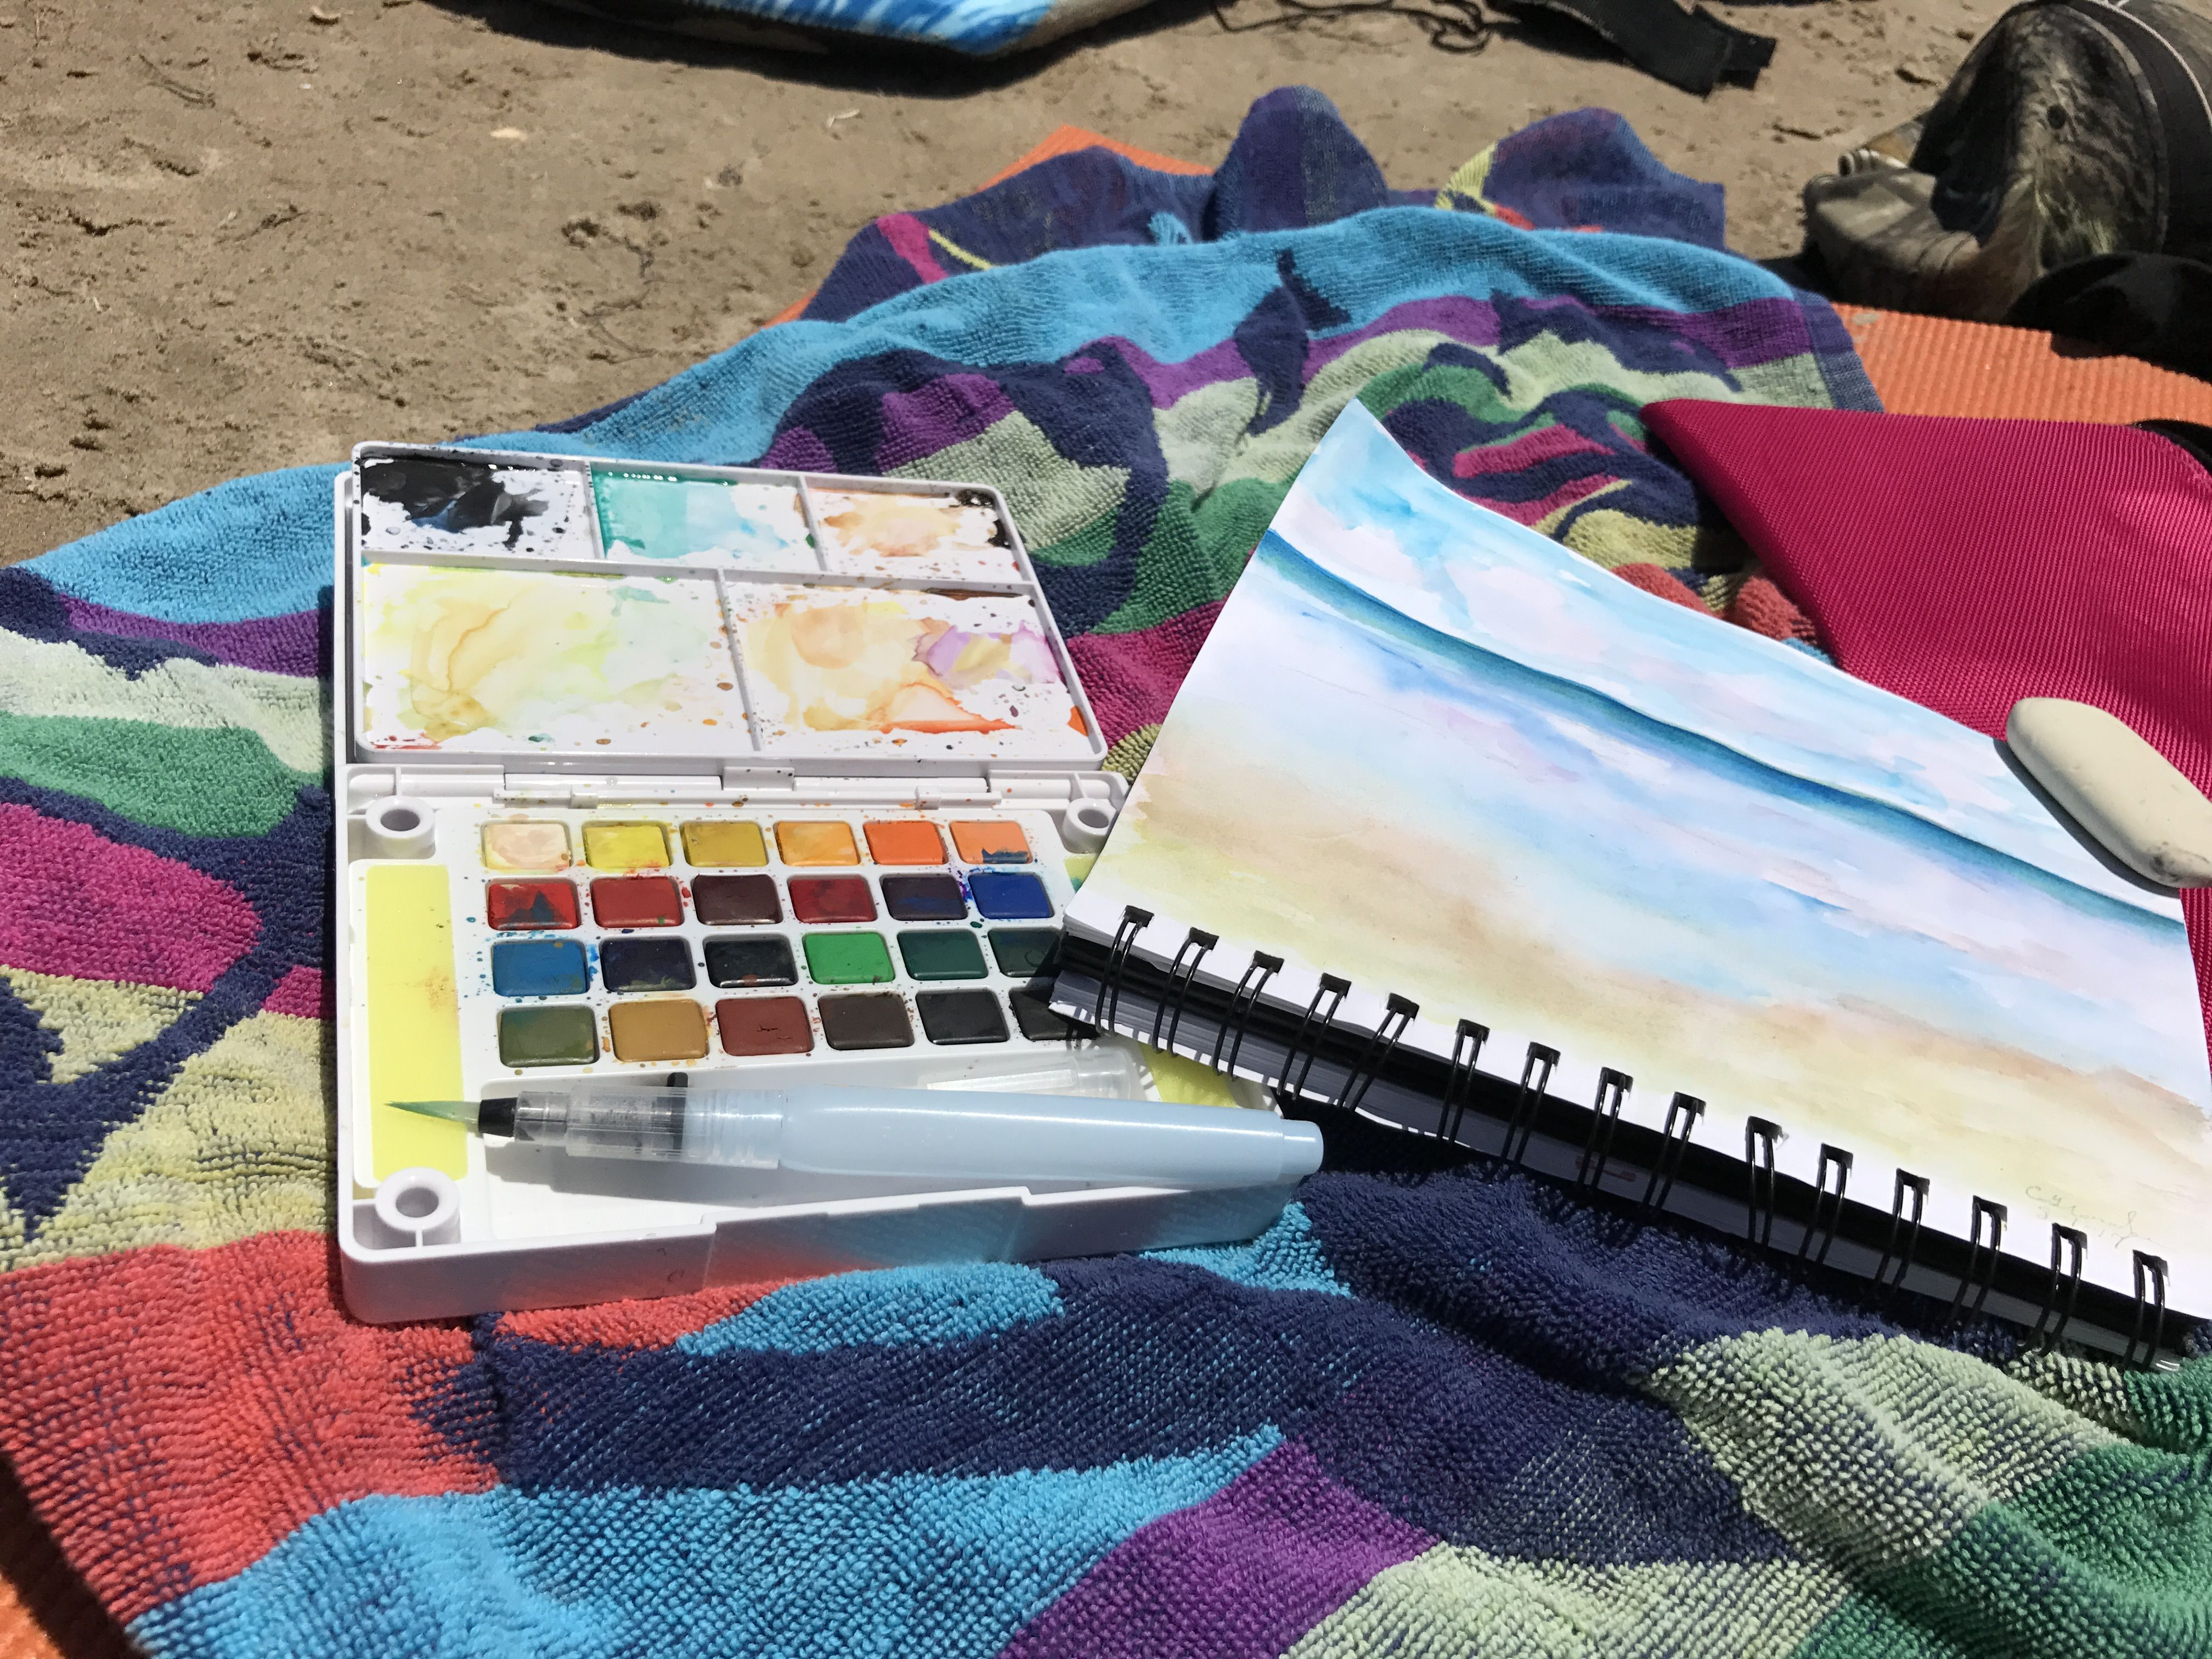 Sketching And Painting At The Beach South Padre Island Texas